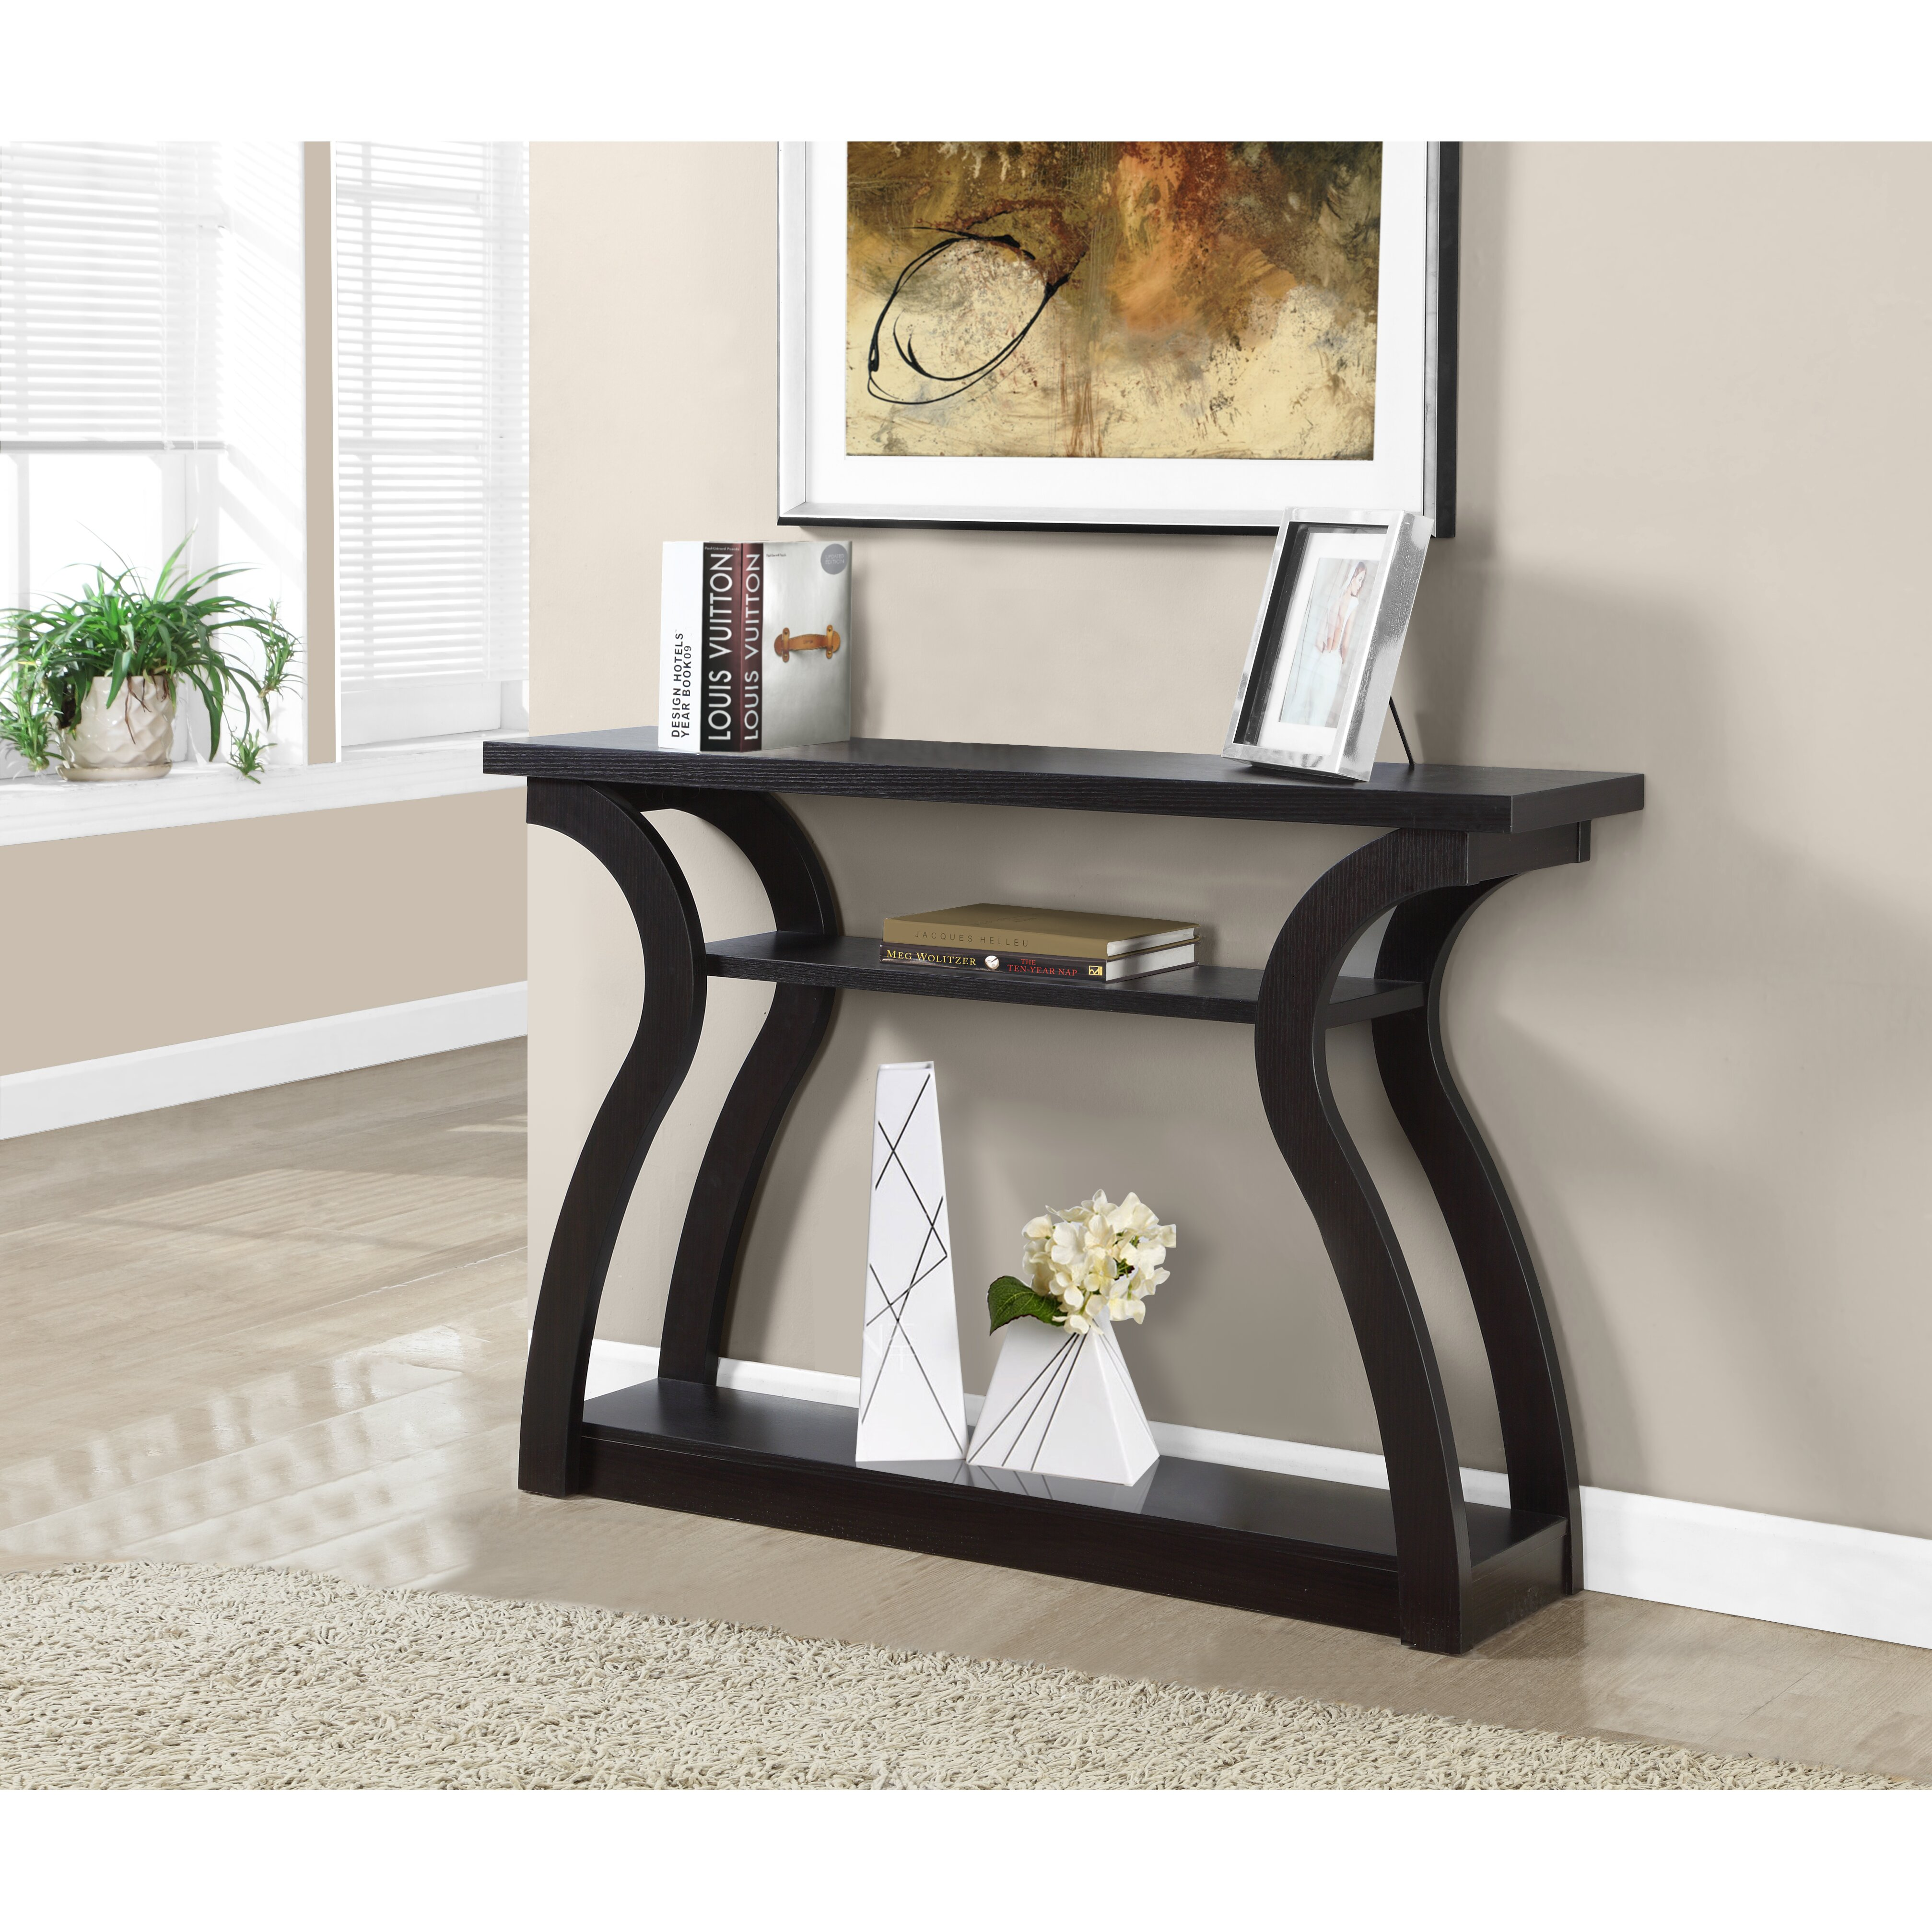 Monarch specialties inc console table reviews wayfair for Slim sofa table